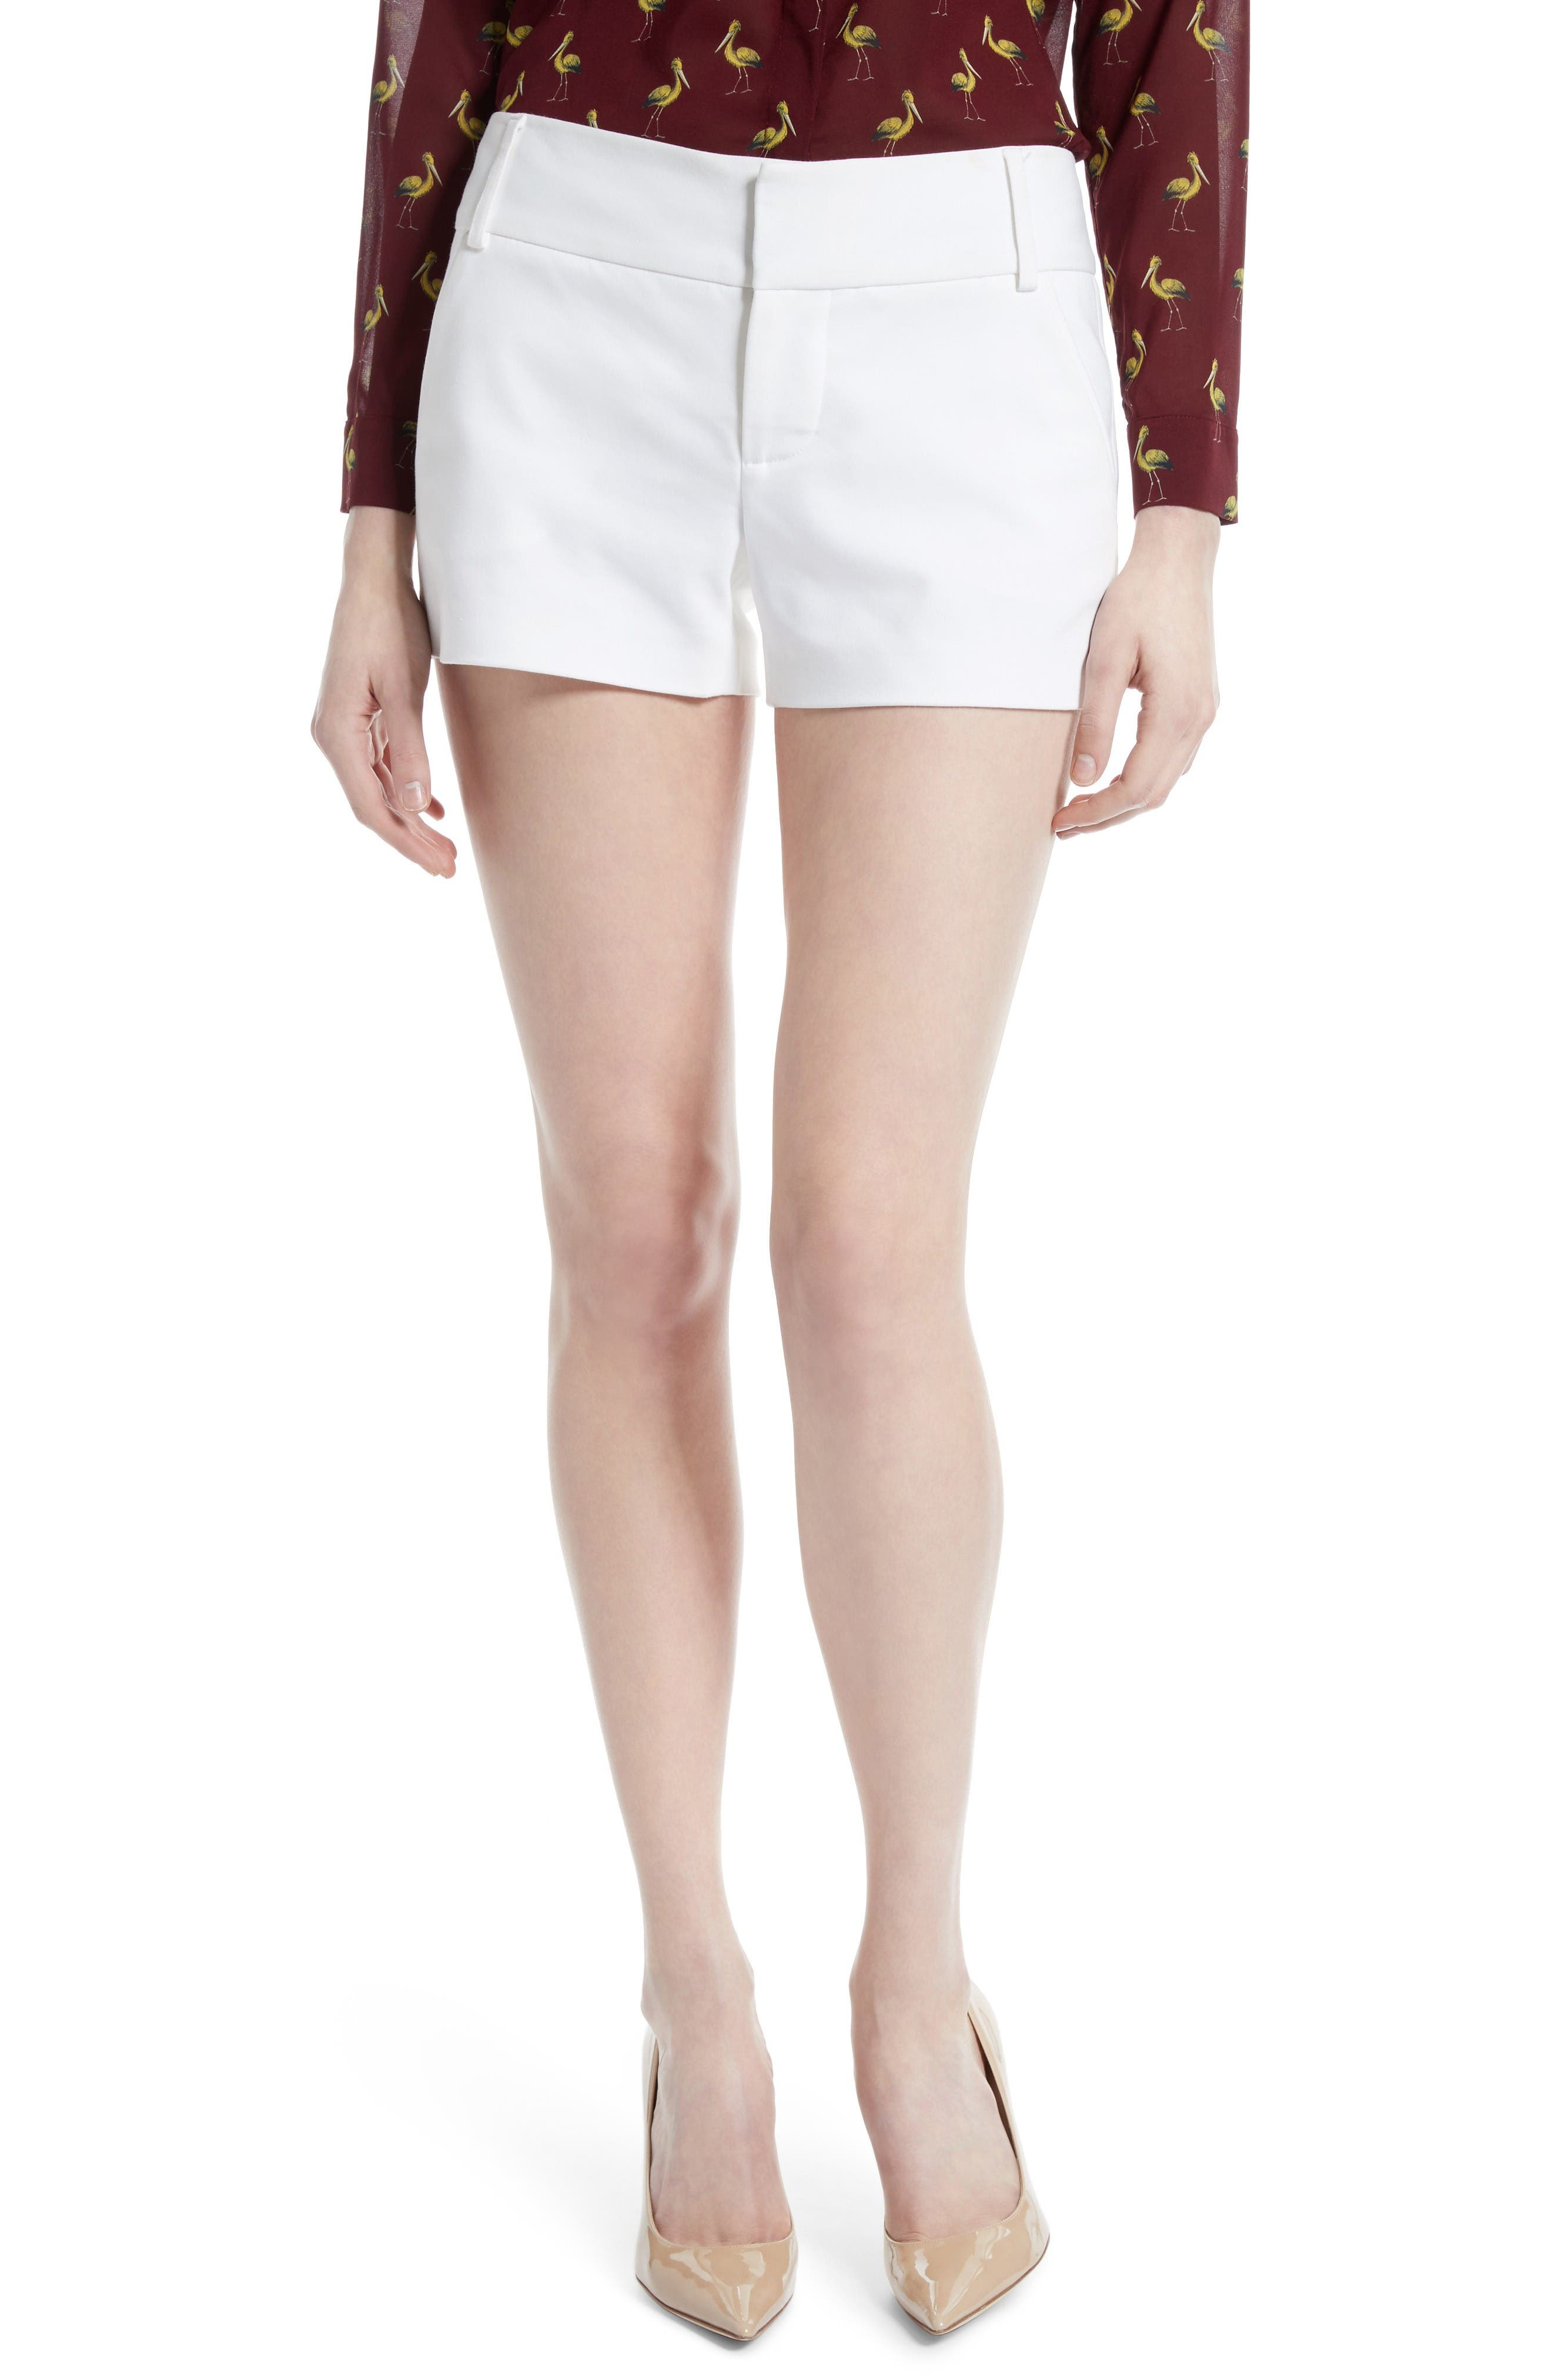 Alternate Image 1 Selected - Alice + Olivia Cady Cotton Blend Shorts